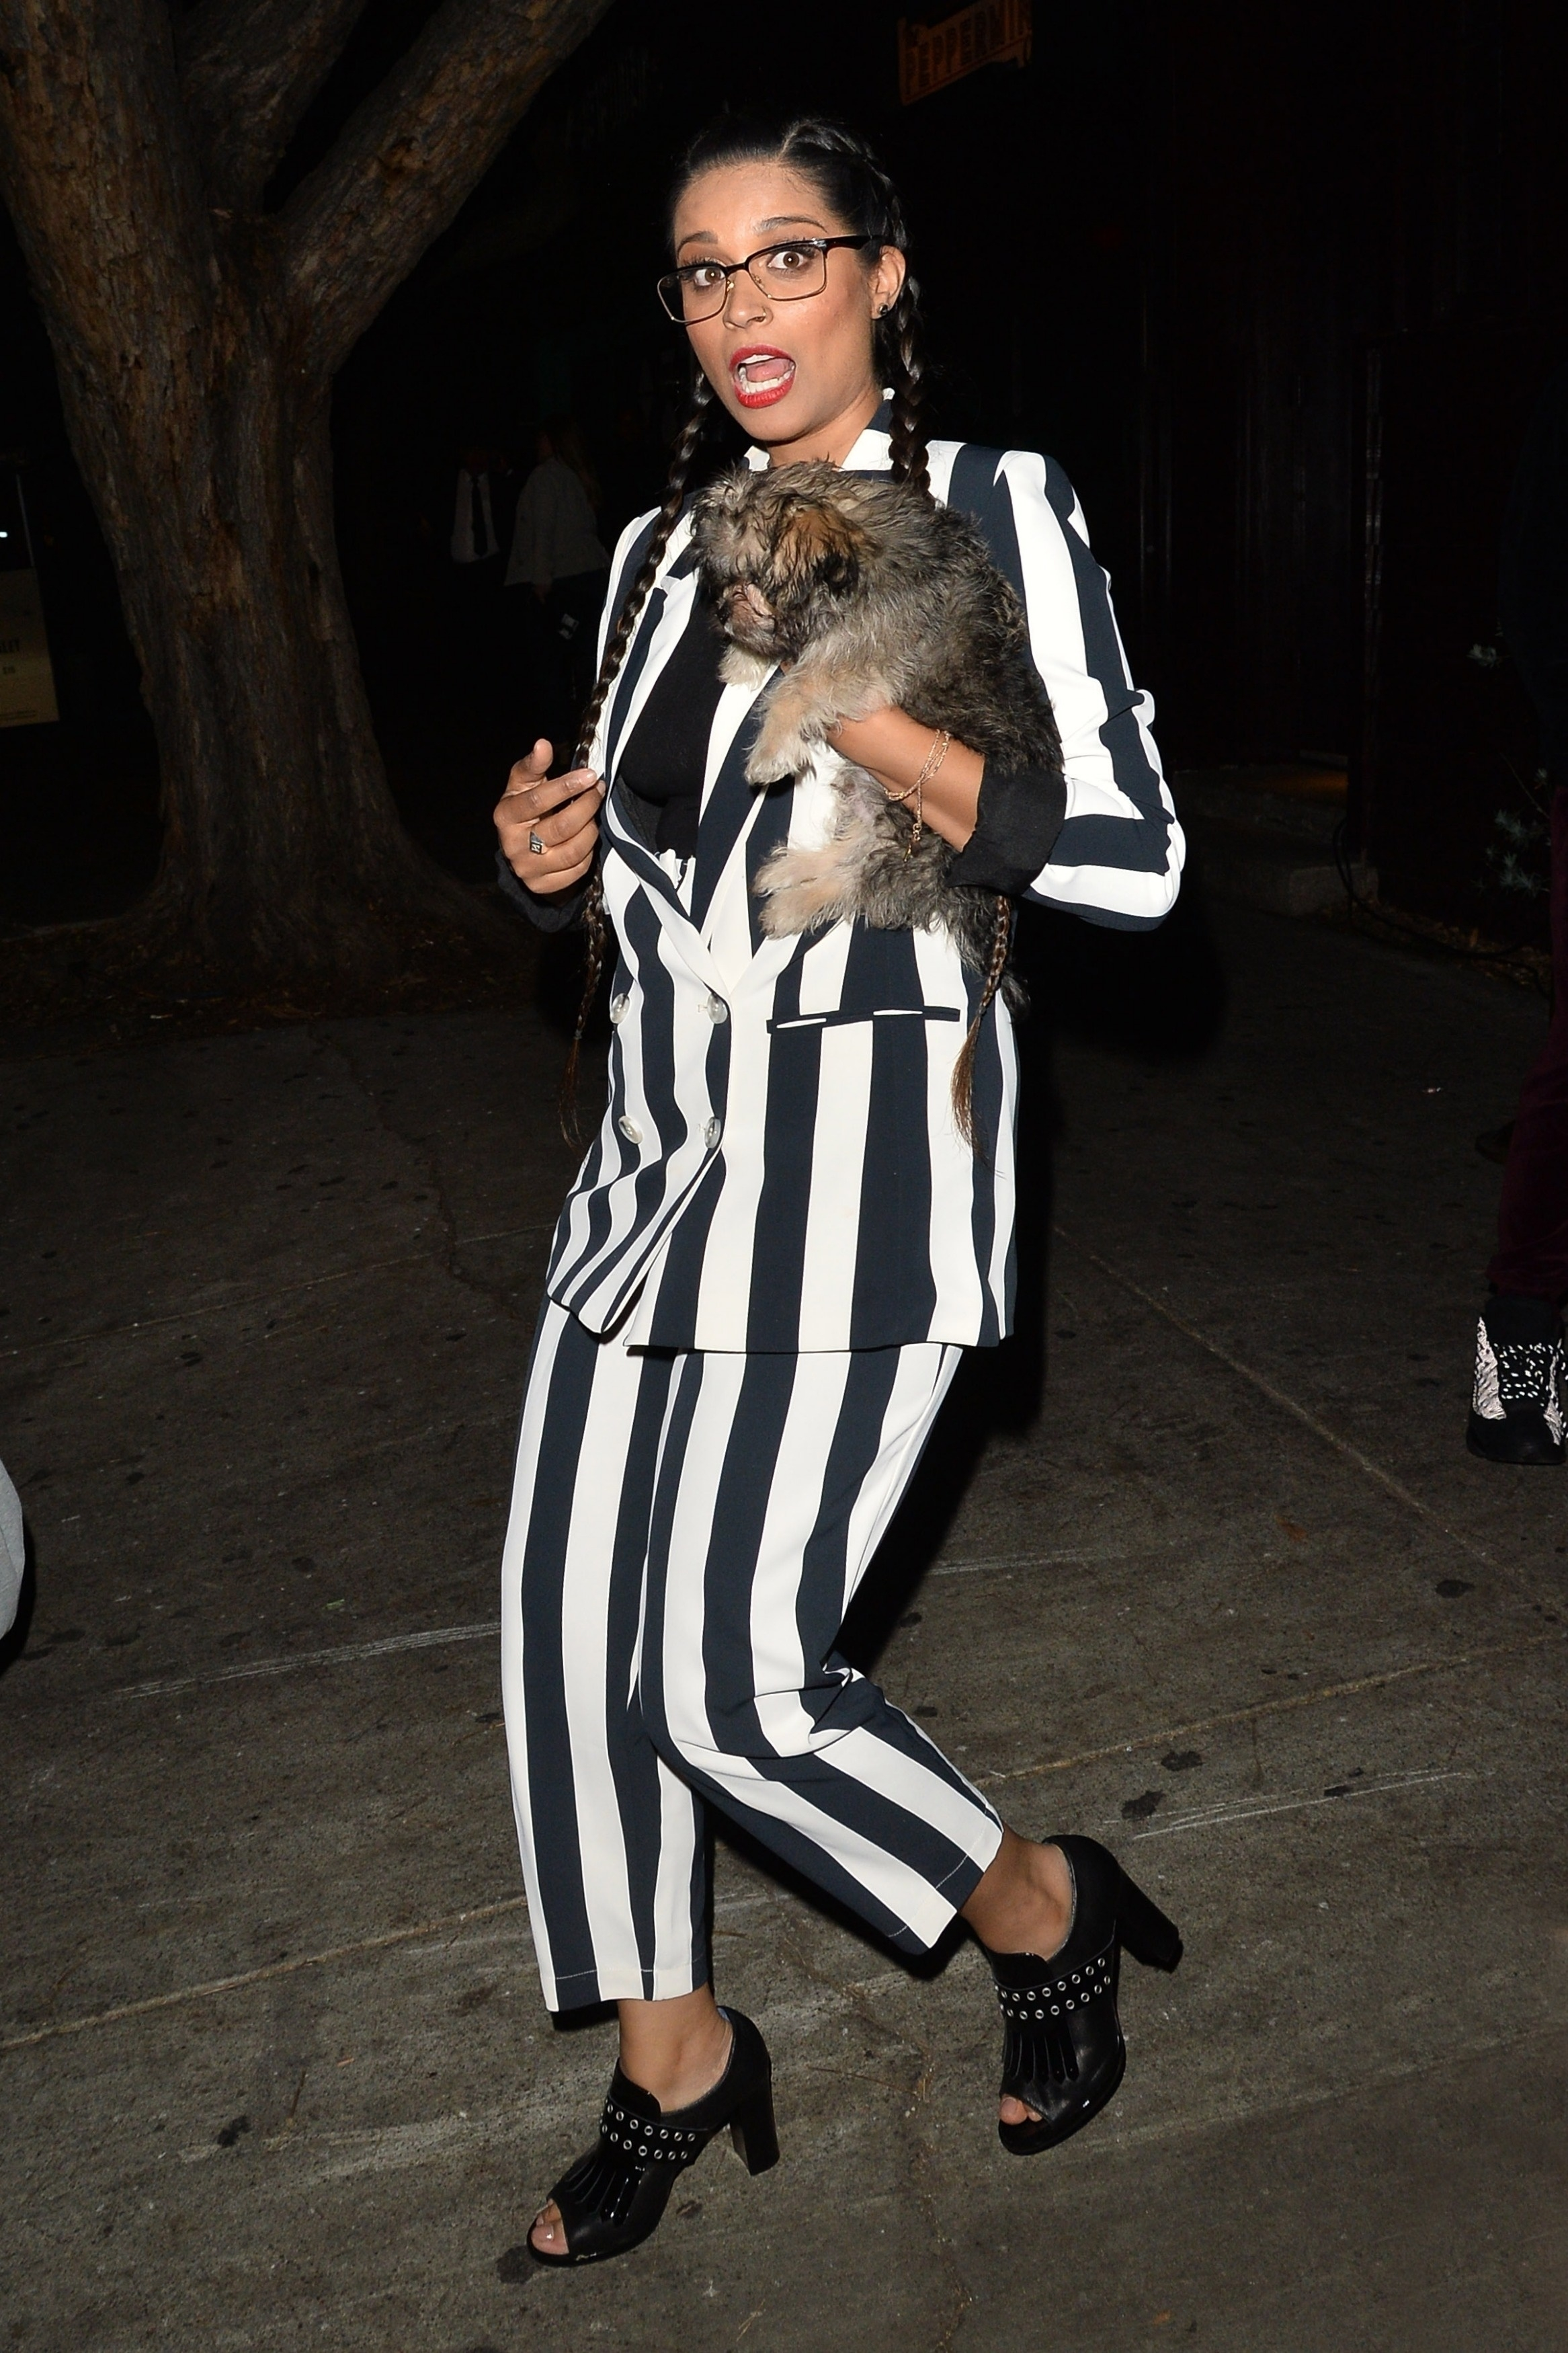 Lilly Singh was snapped leaving the Peppermint Club with her little furry friend after a night out in Los Angeles on April 28, 2018.